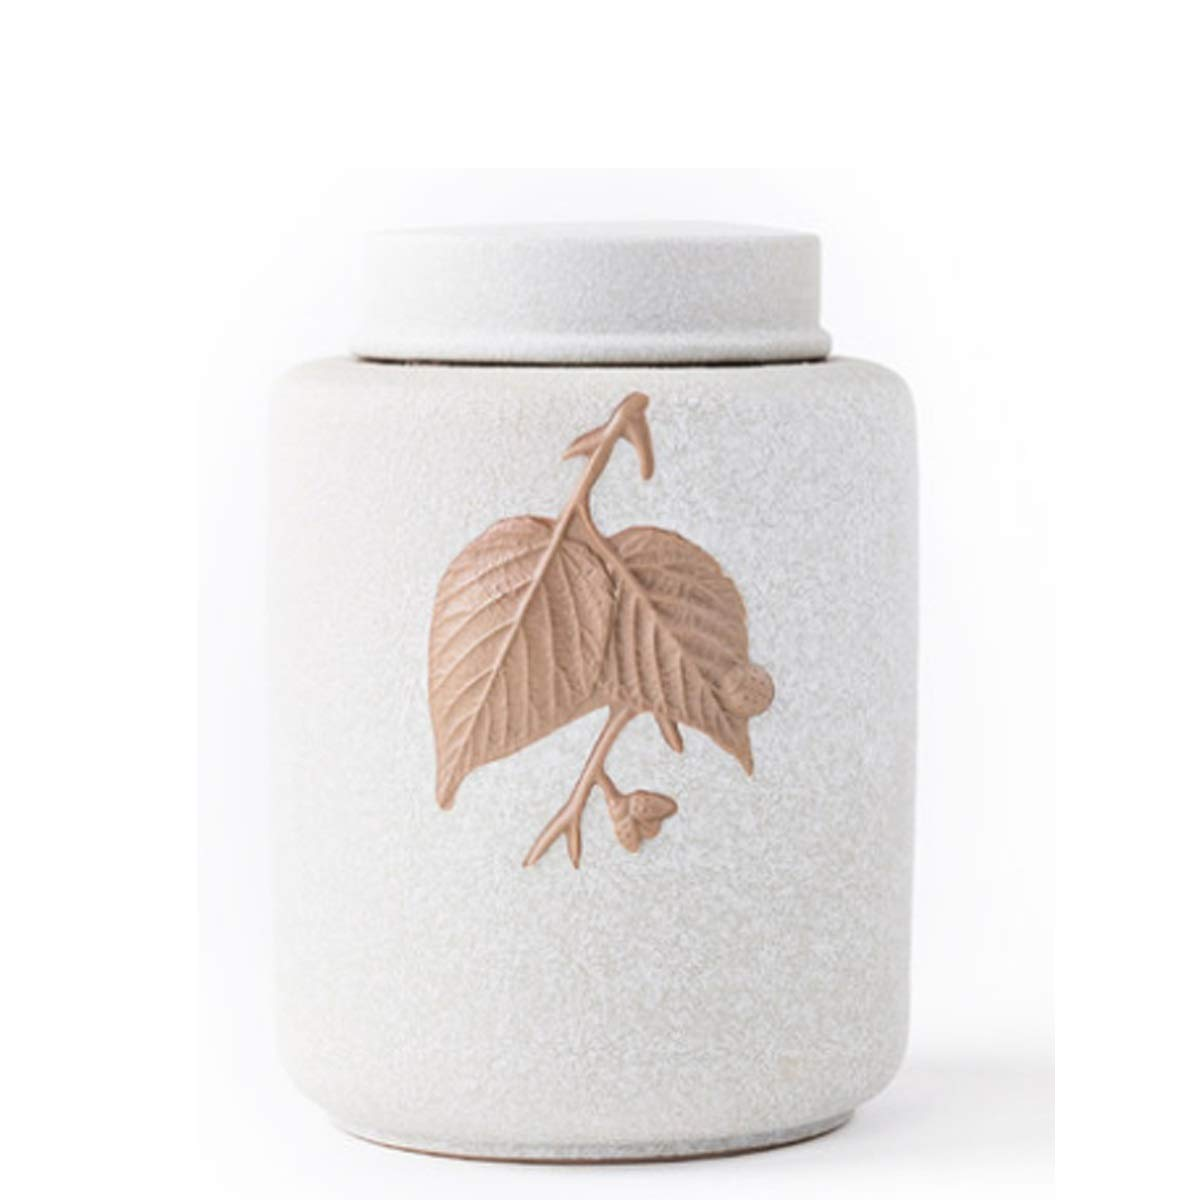 1 XIAN Pet Urns for Dogs Ashes and Cats Too Pet Urn Box Cat Dog Died Crematorium Jar Ceramic Ash Bottle Souvenir Medium Eucalyptus Memorial Ashes (Style   2)